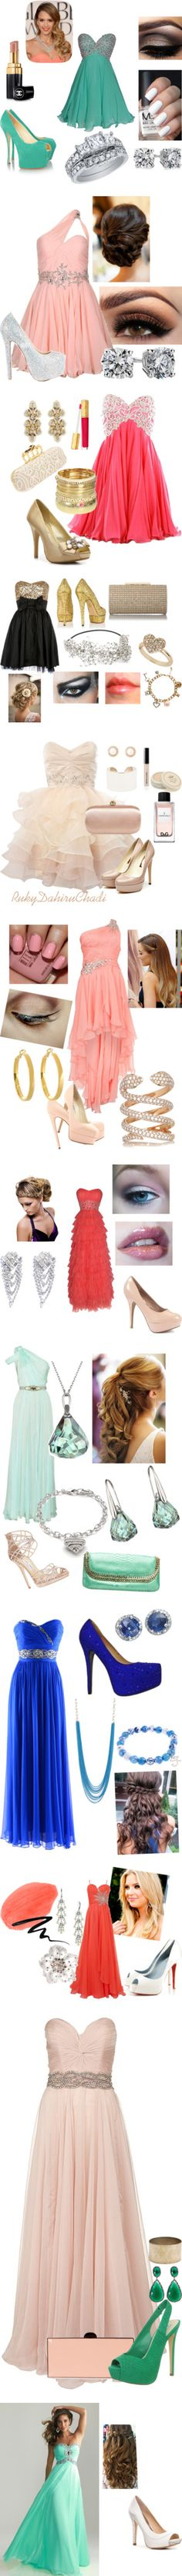 Wow, these are all beautiful looks. Let's throw a fancy party! Prom Outfits, Hoco Dresses, Dance Dresses, Homecoming Dresses, Pretty Dresses, Beautiful Dresses, Evening Dresses, Formal Prom, Dream Dress